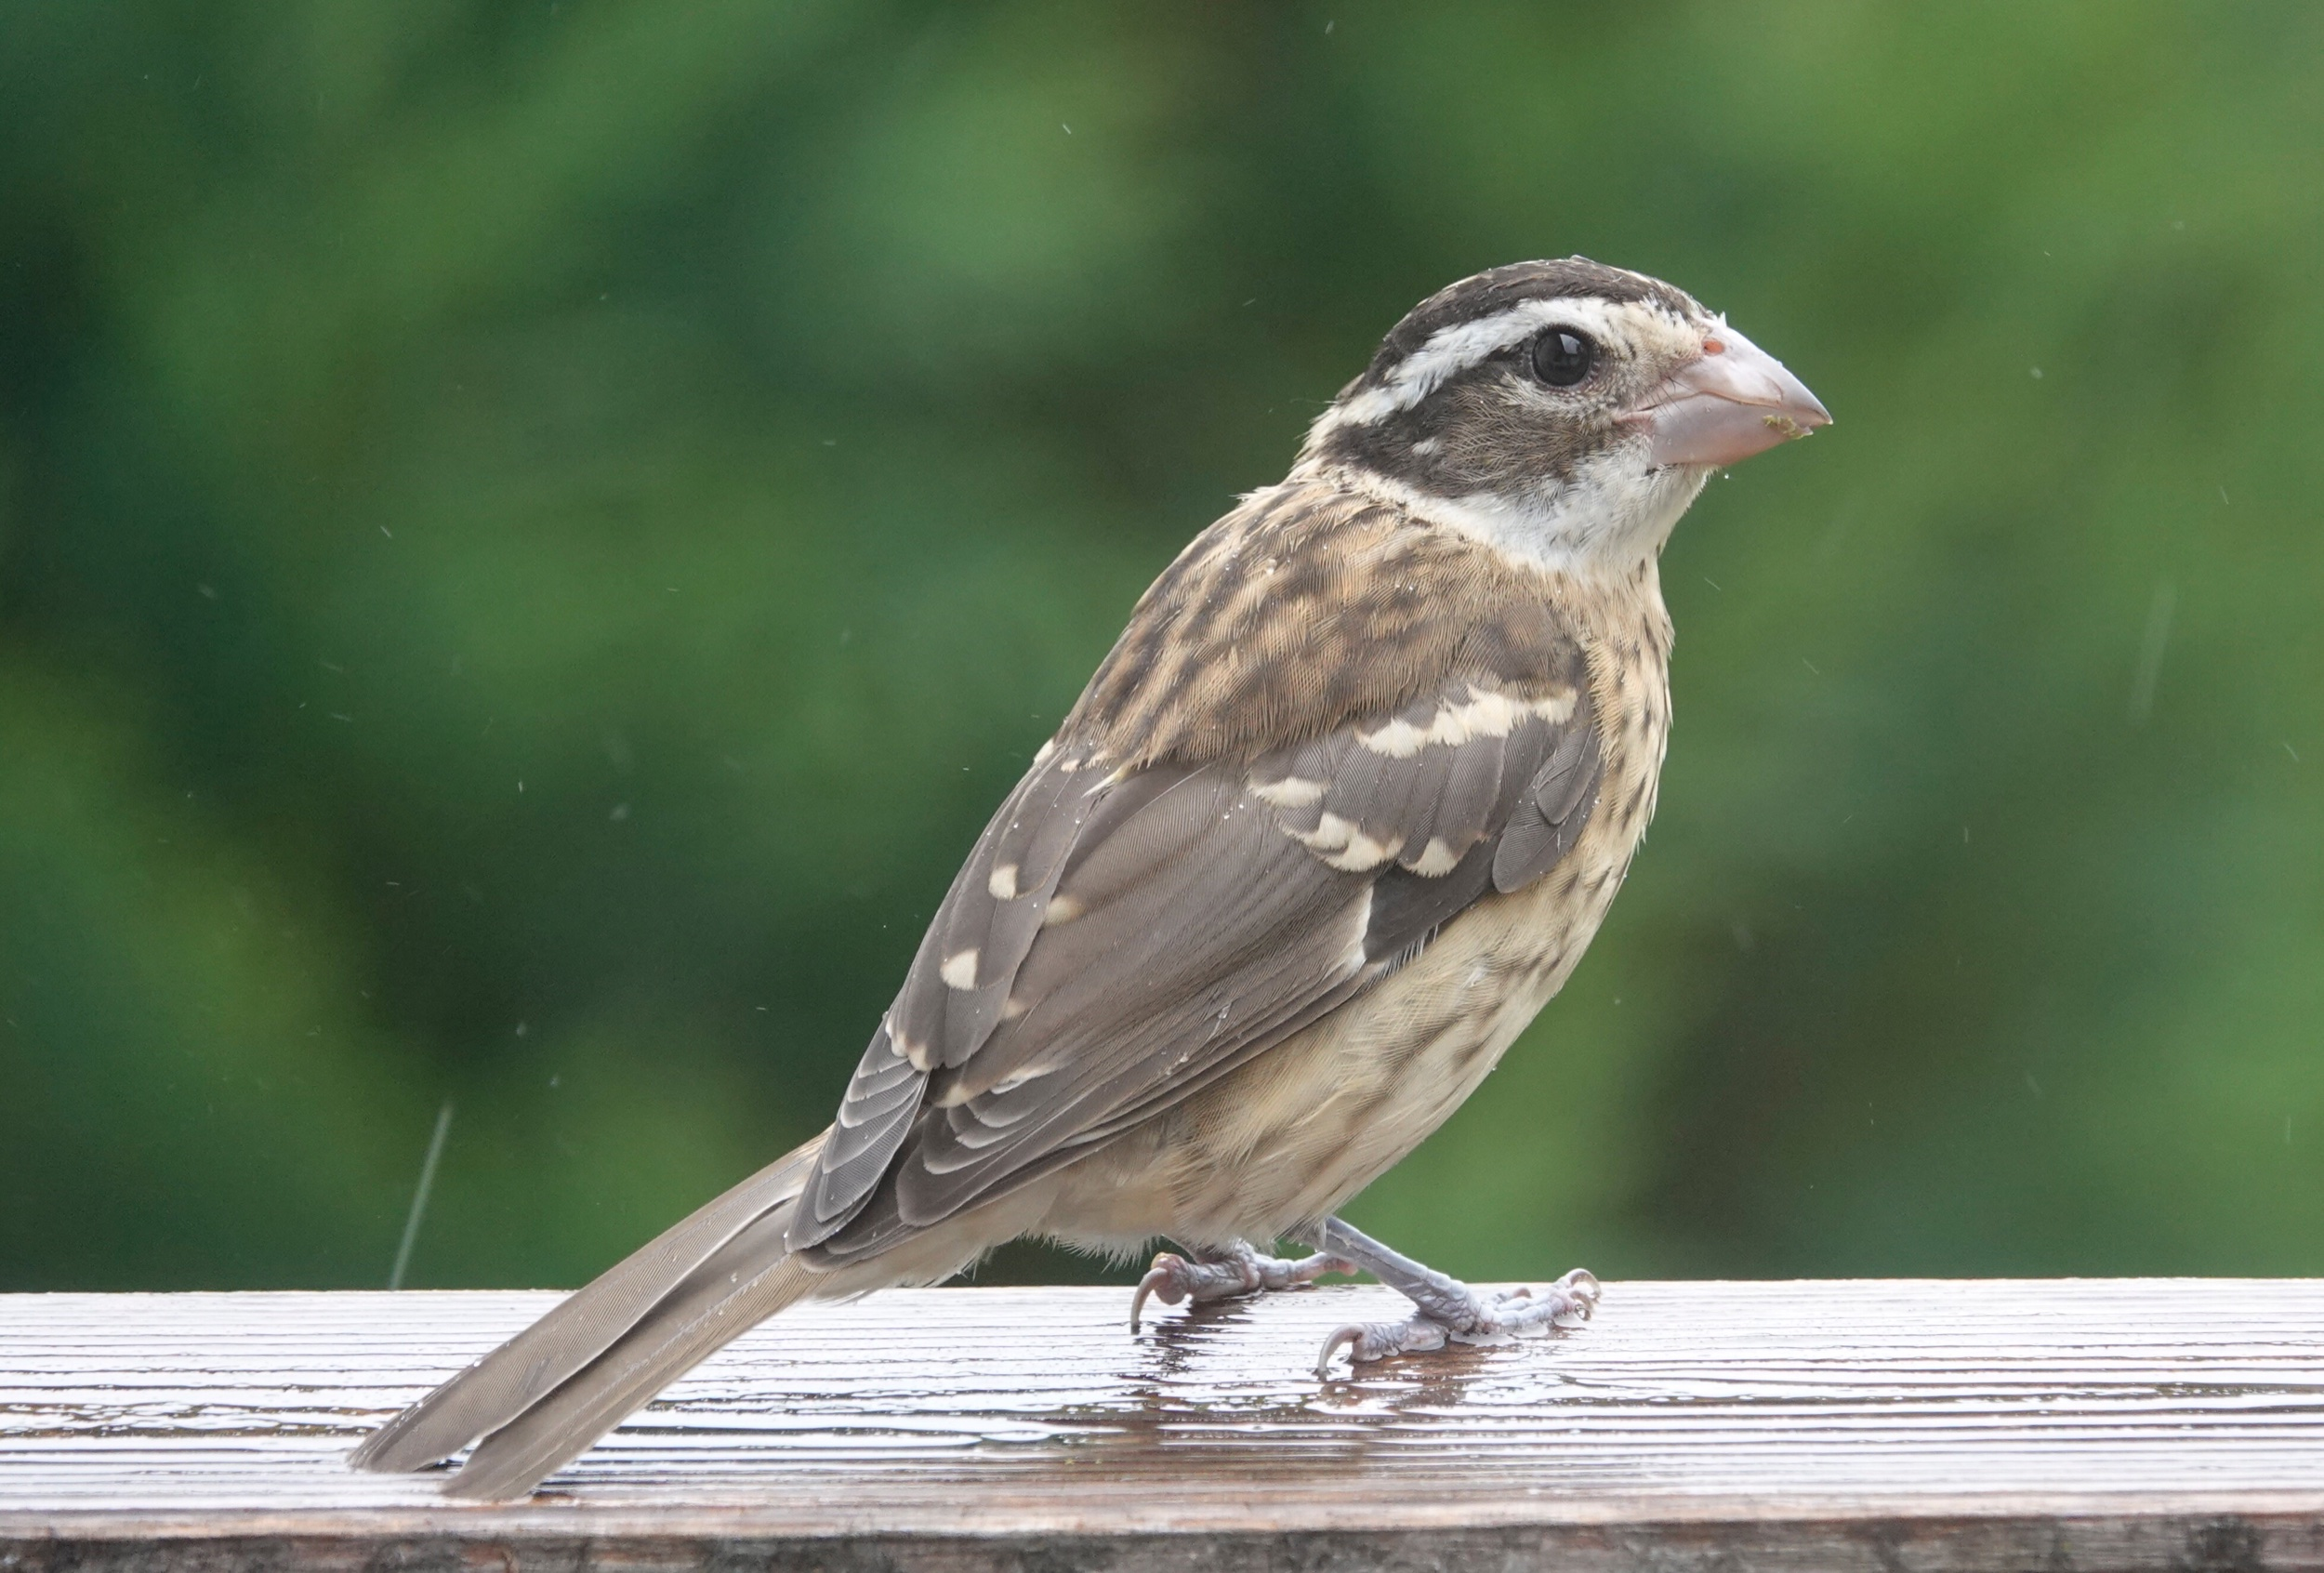 One of my favorites, a Rose-breasted Grosbeak